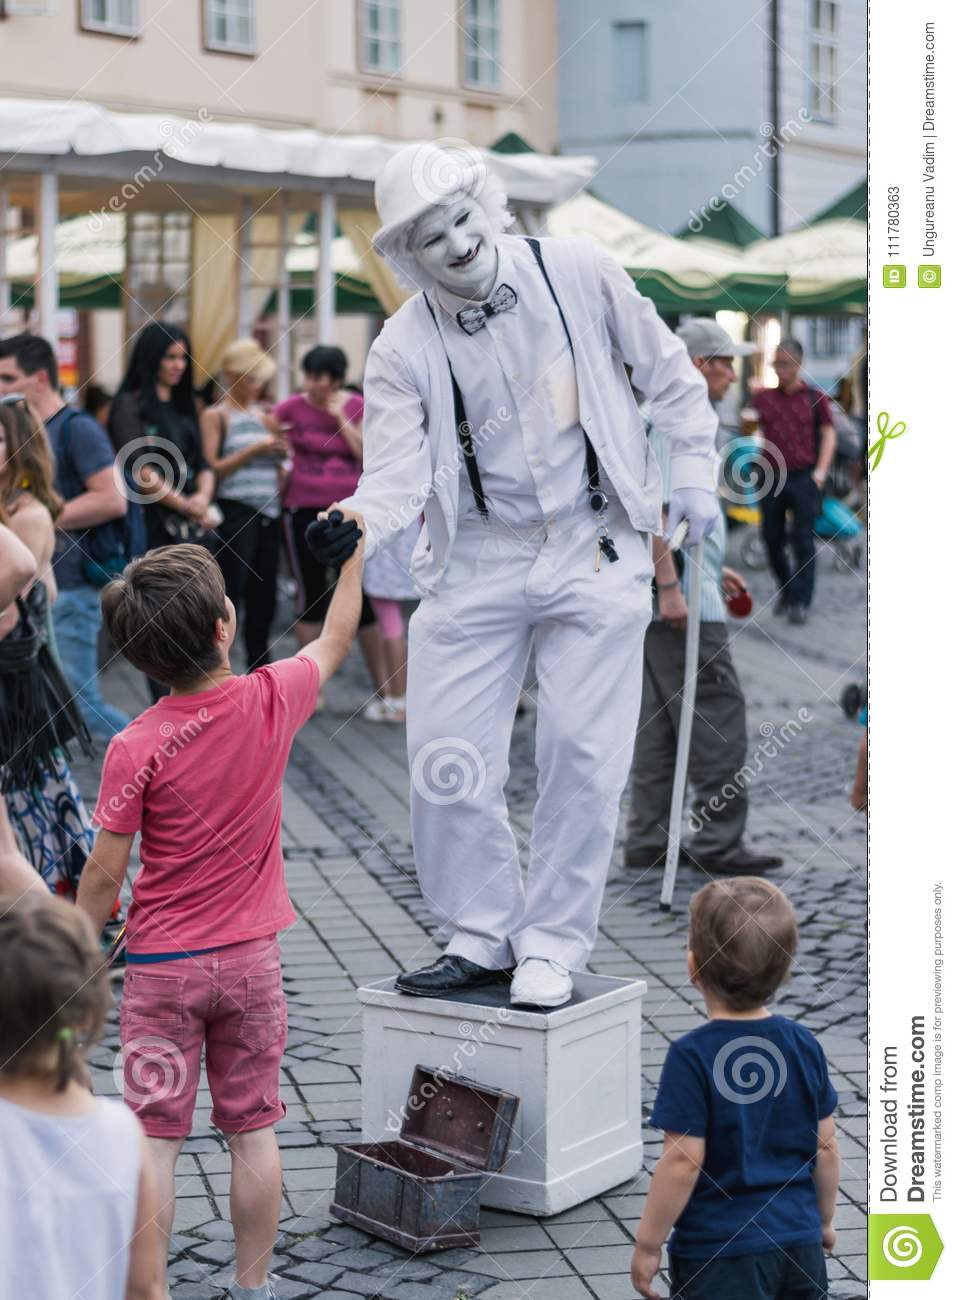 SIBIU, ROMANIA - 17 JUNE 2016: A mime is shaking hands with a boy in Big Square during Sibiu International Theatre Festival, Sibiu